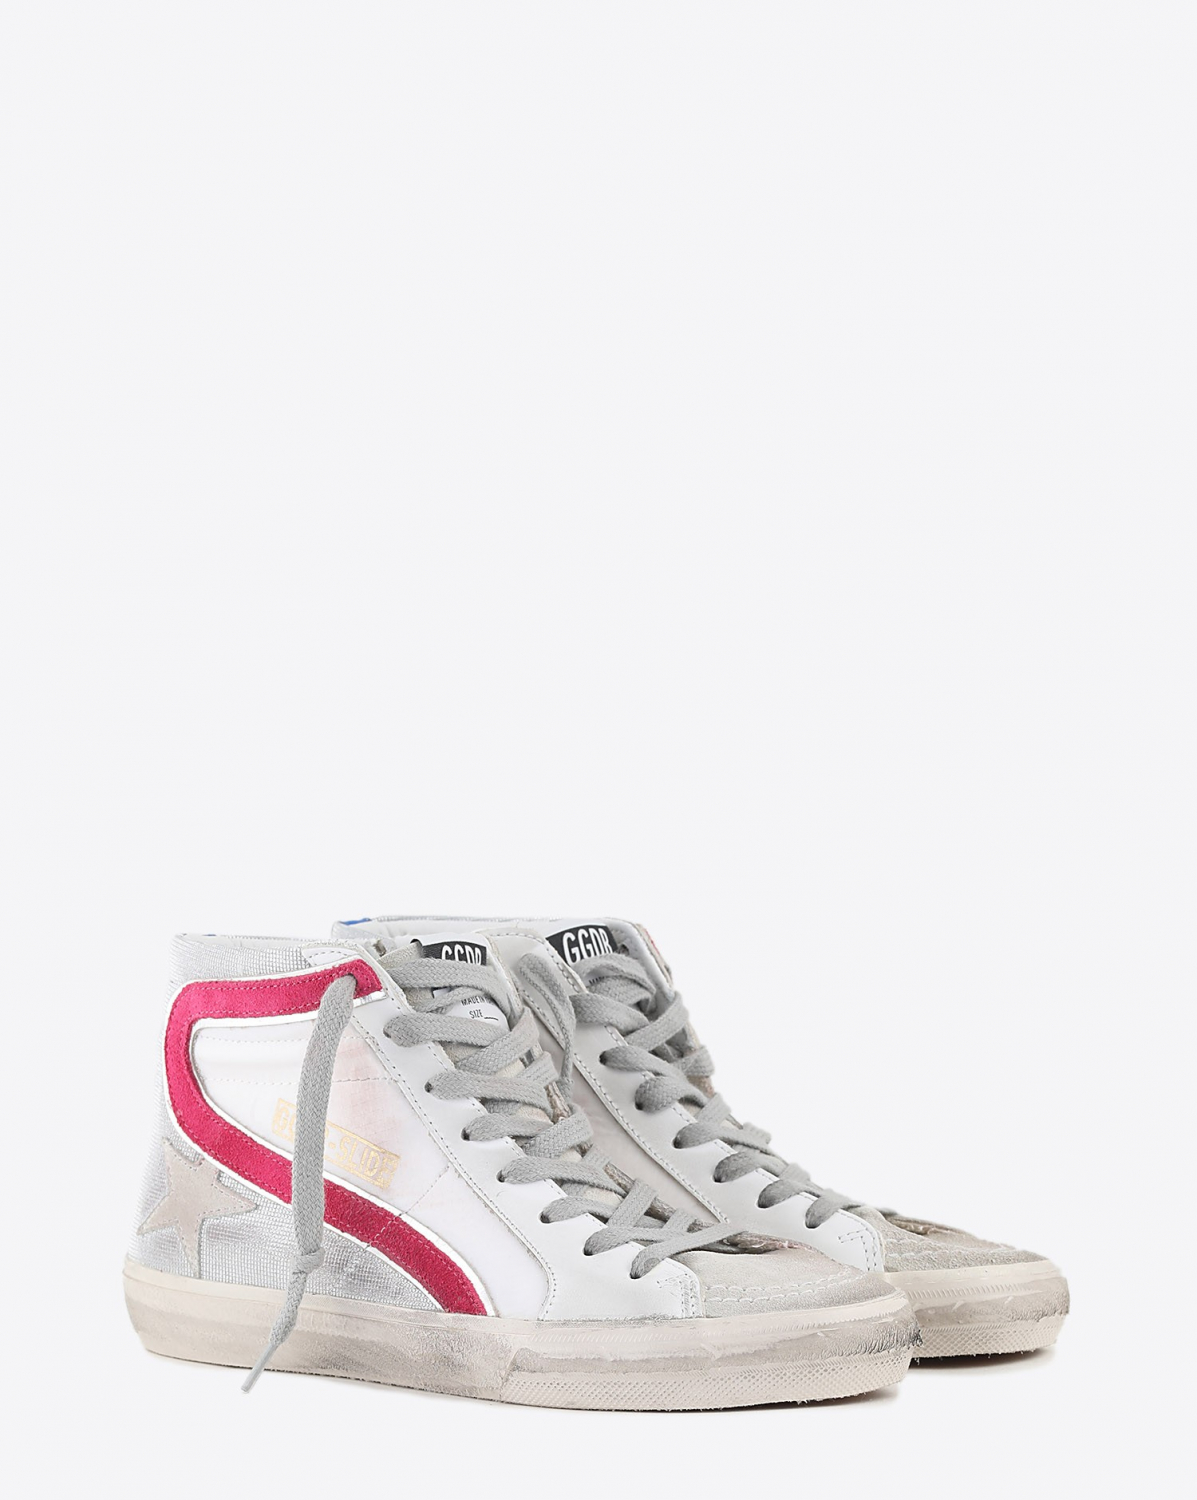 Golden Goose Woman Collection Slide - Silver Orchid Pink Bluette 80806